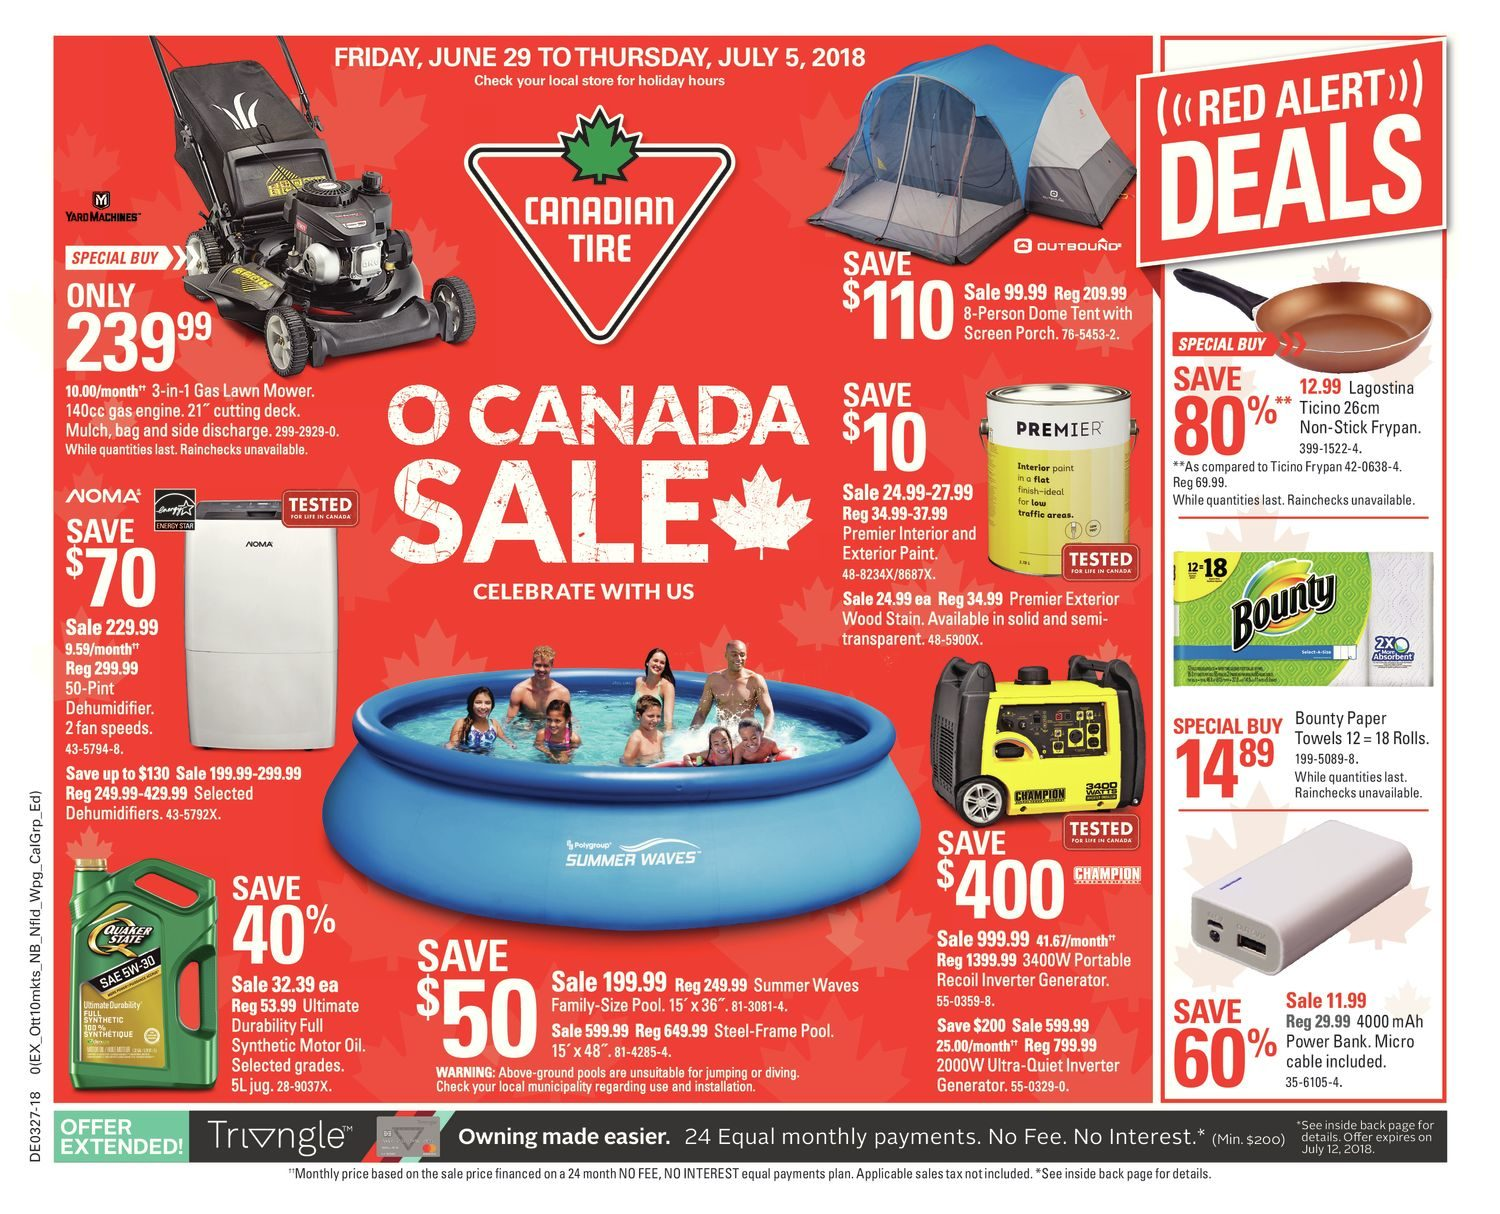 Canadian Tire Weekly Flyer O Canada Jun 29 Jul 5 Redflagdeals Com